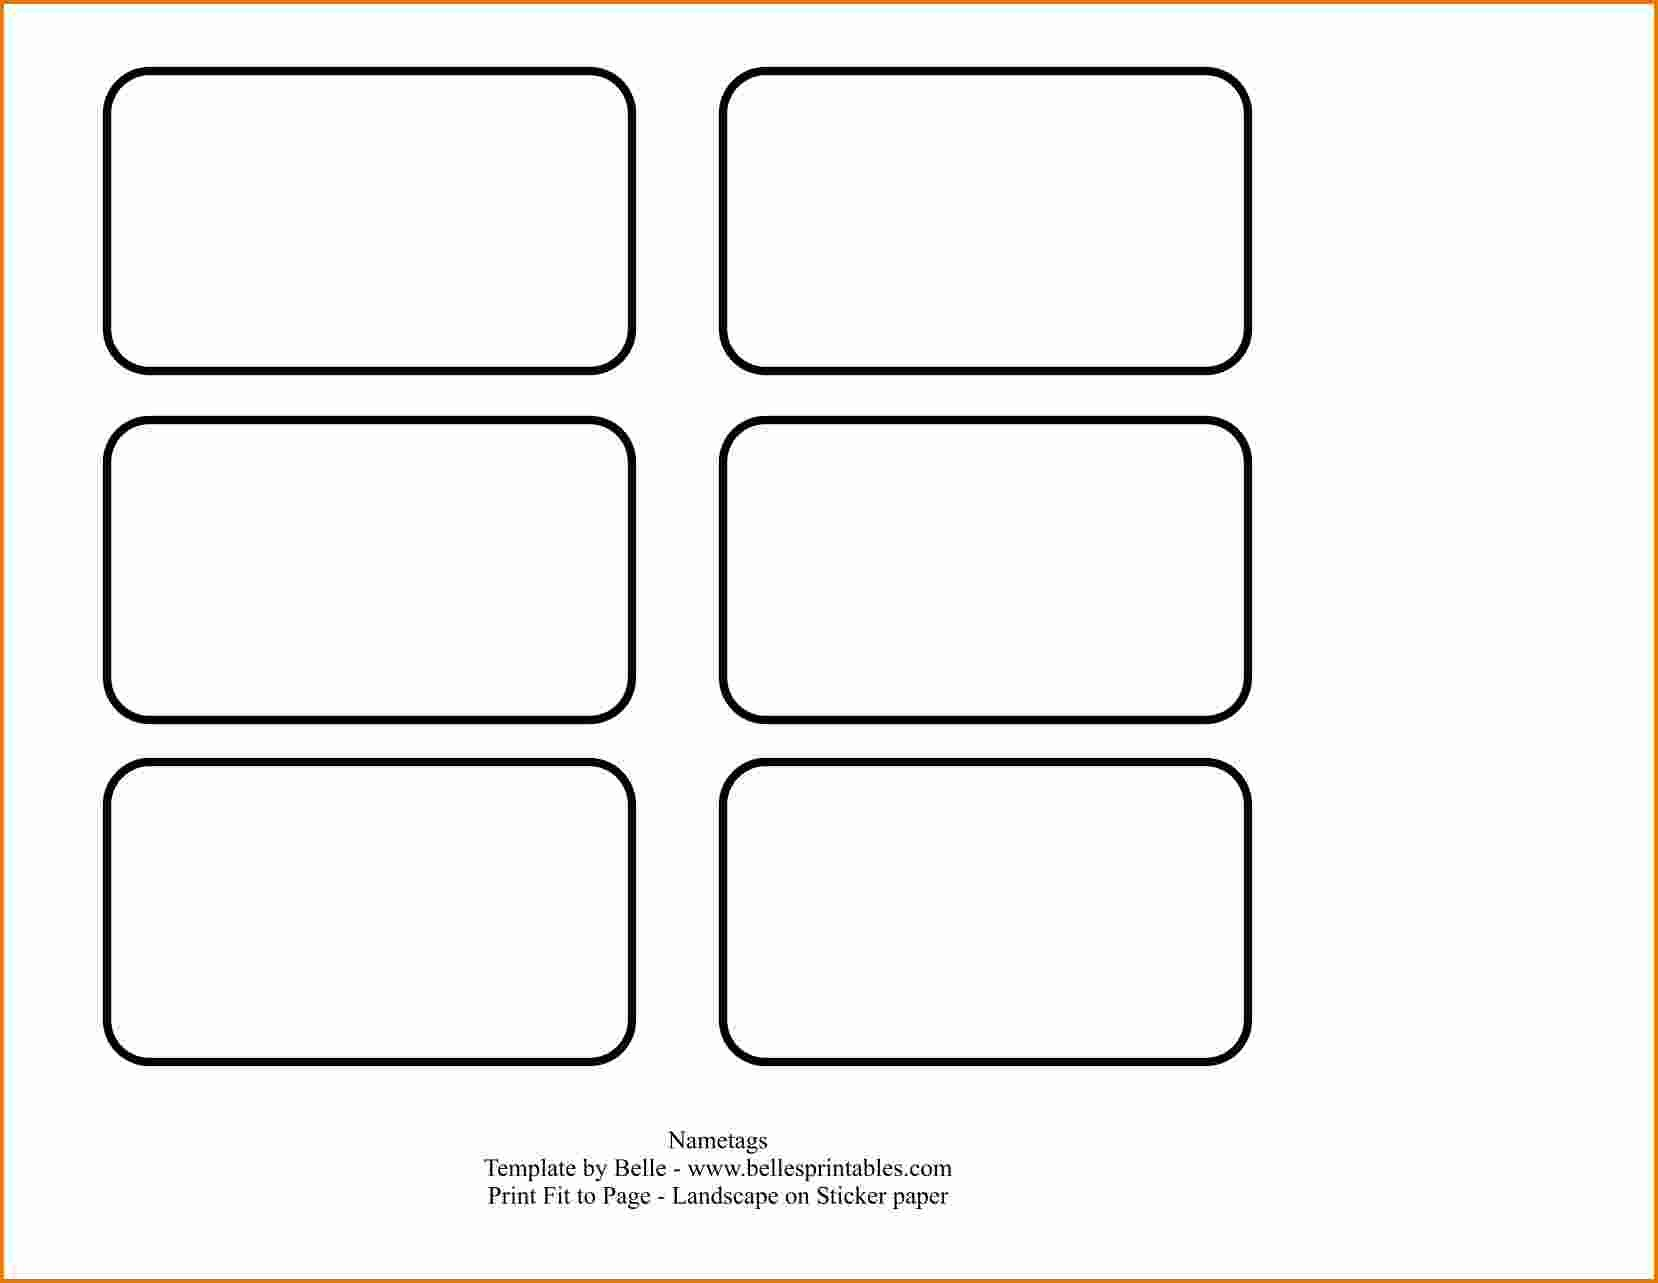 001 Free Name Tag Template Unbelievable Ideas Download Word - Free Printable Name Tags For Teachers